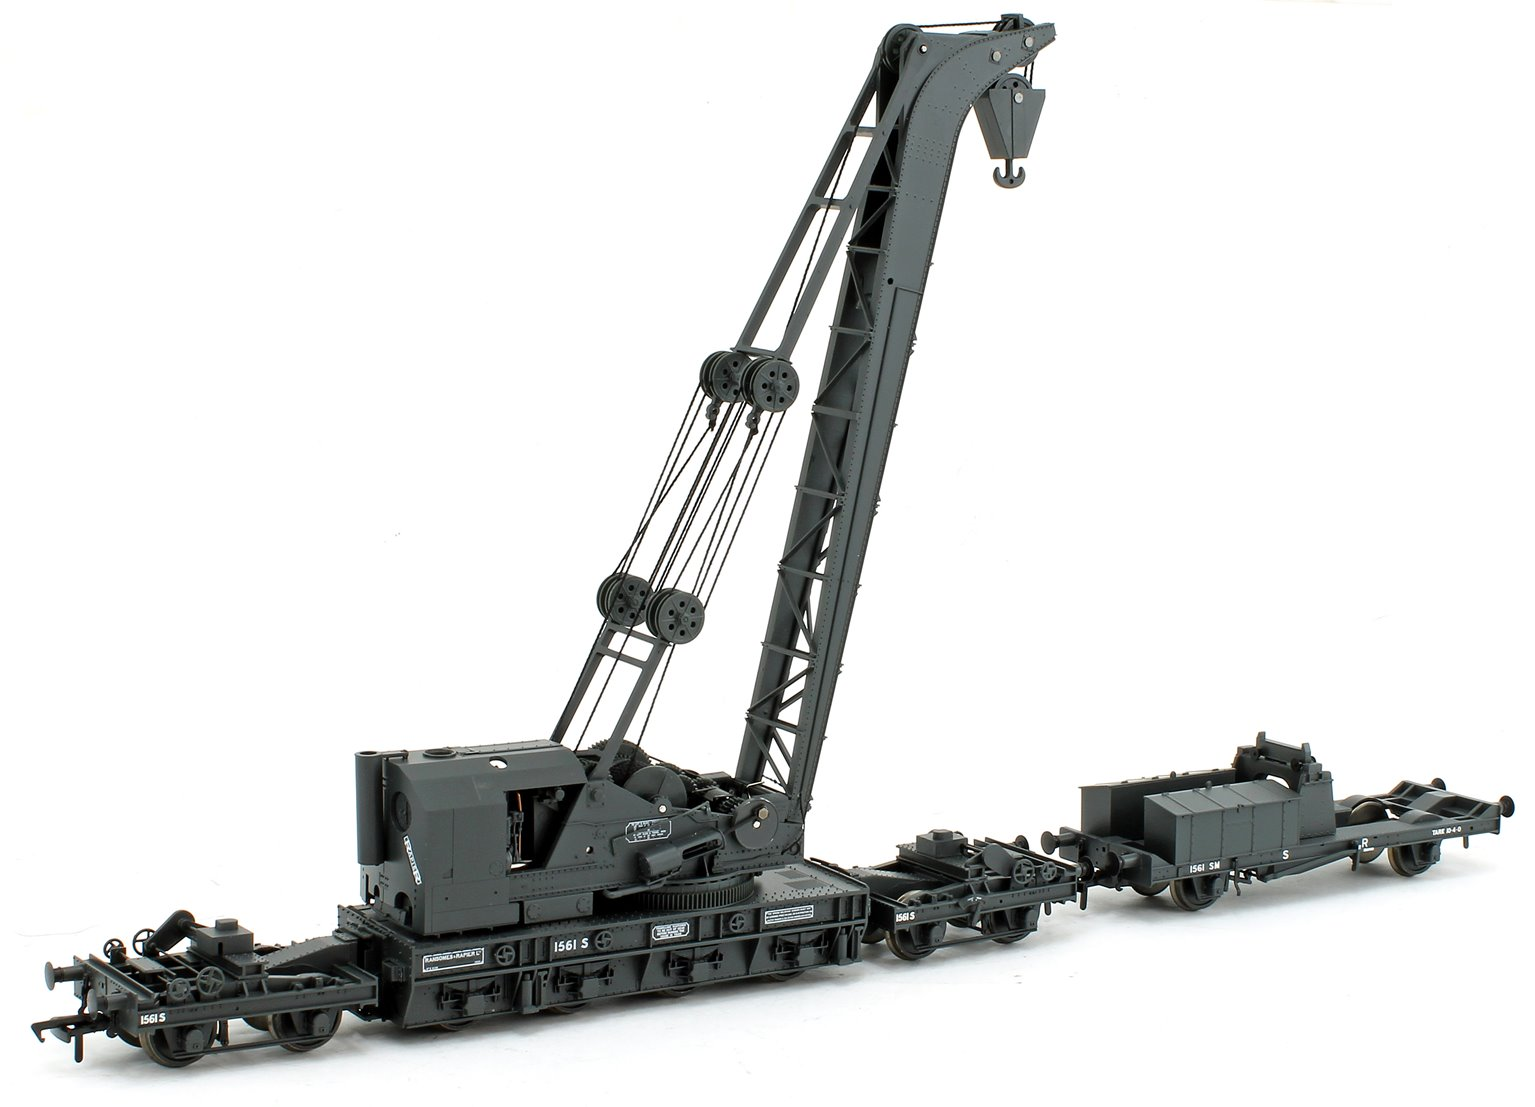 Ransomes & Rapier 45T Steam Breakdown Crane SR Grey 1561 S